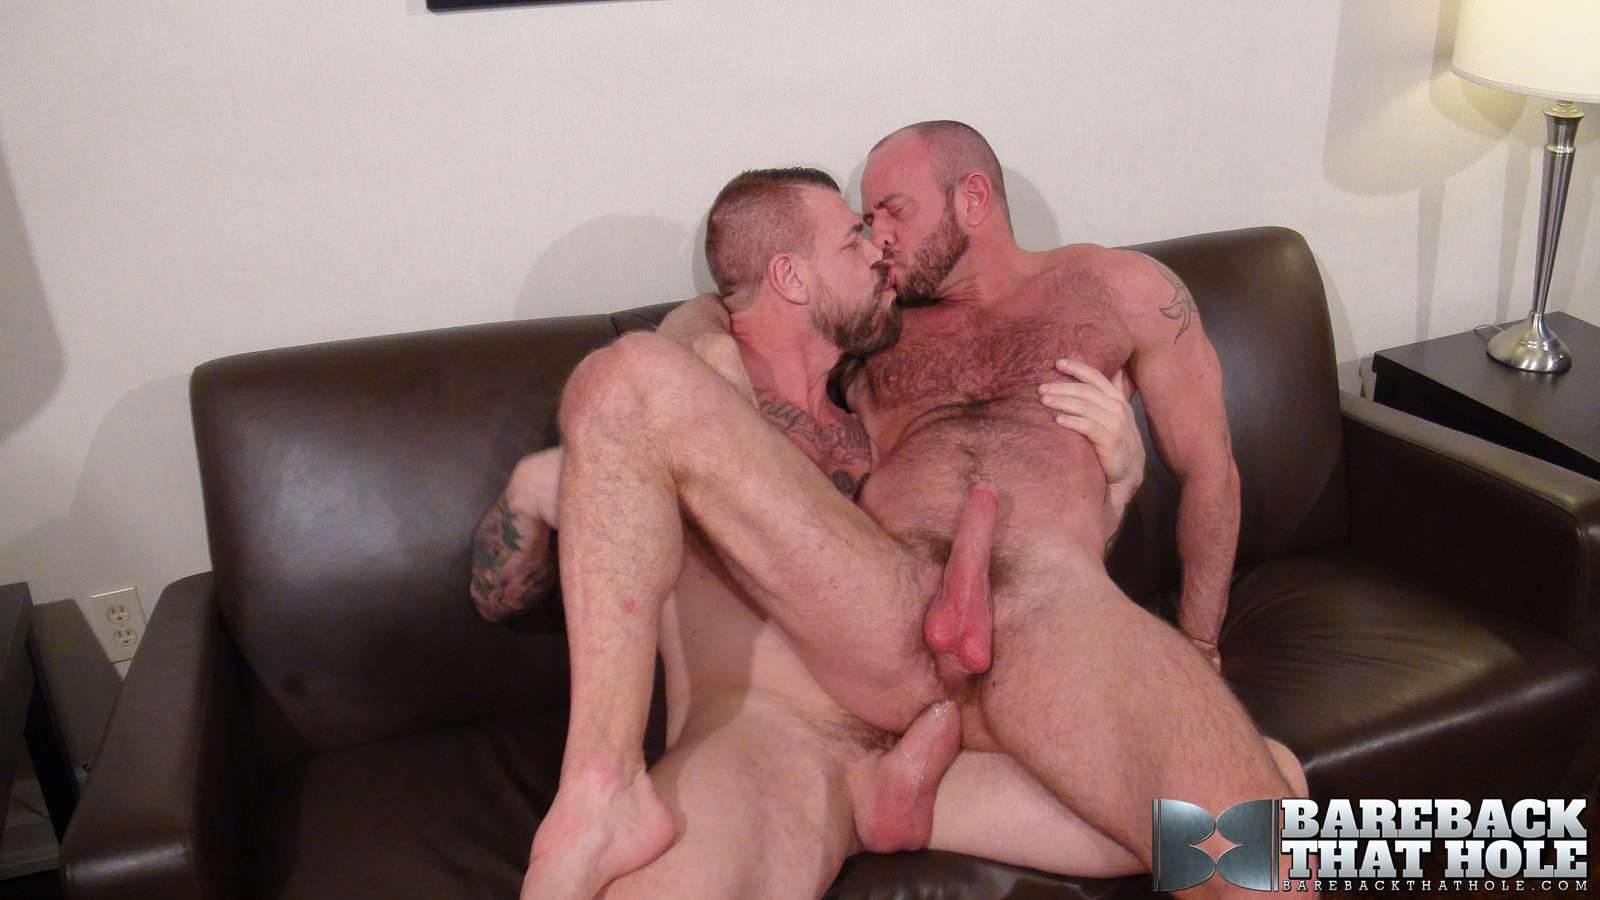 Bareback That Hole Rocco Steele and Matt Stevens Hairy Muscle Daddy Bareback Amateur Gay Porn 16 Hairy Muscle Daddy Rocco Steele Breeding Matt Stevens